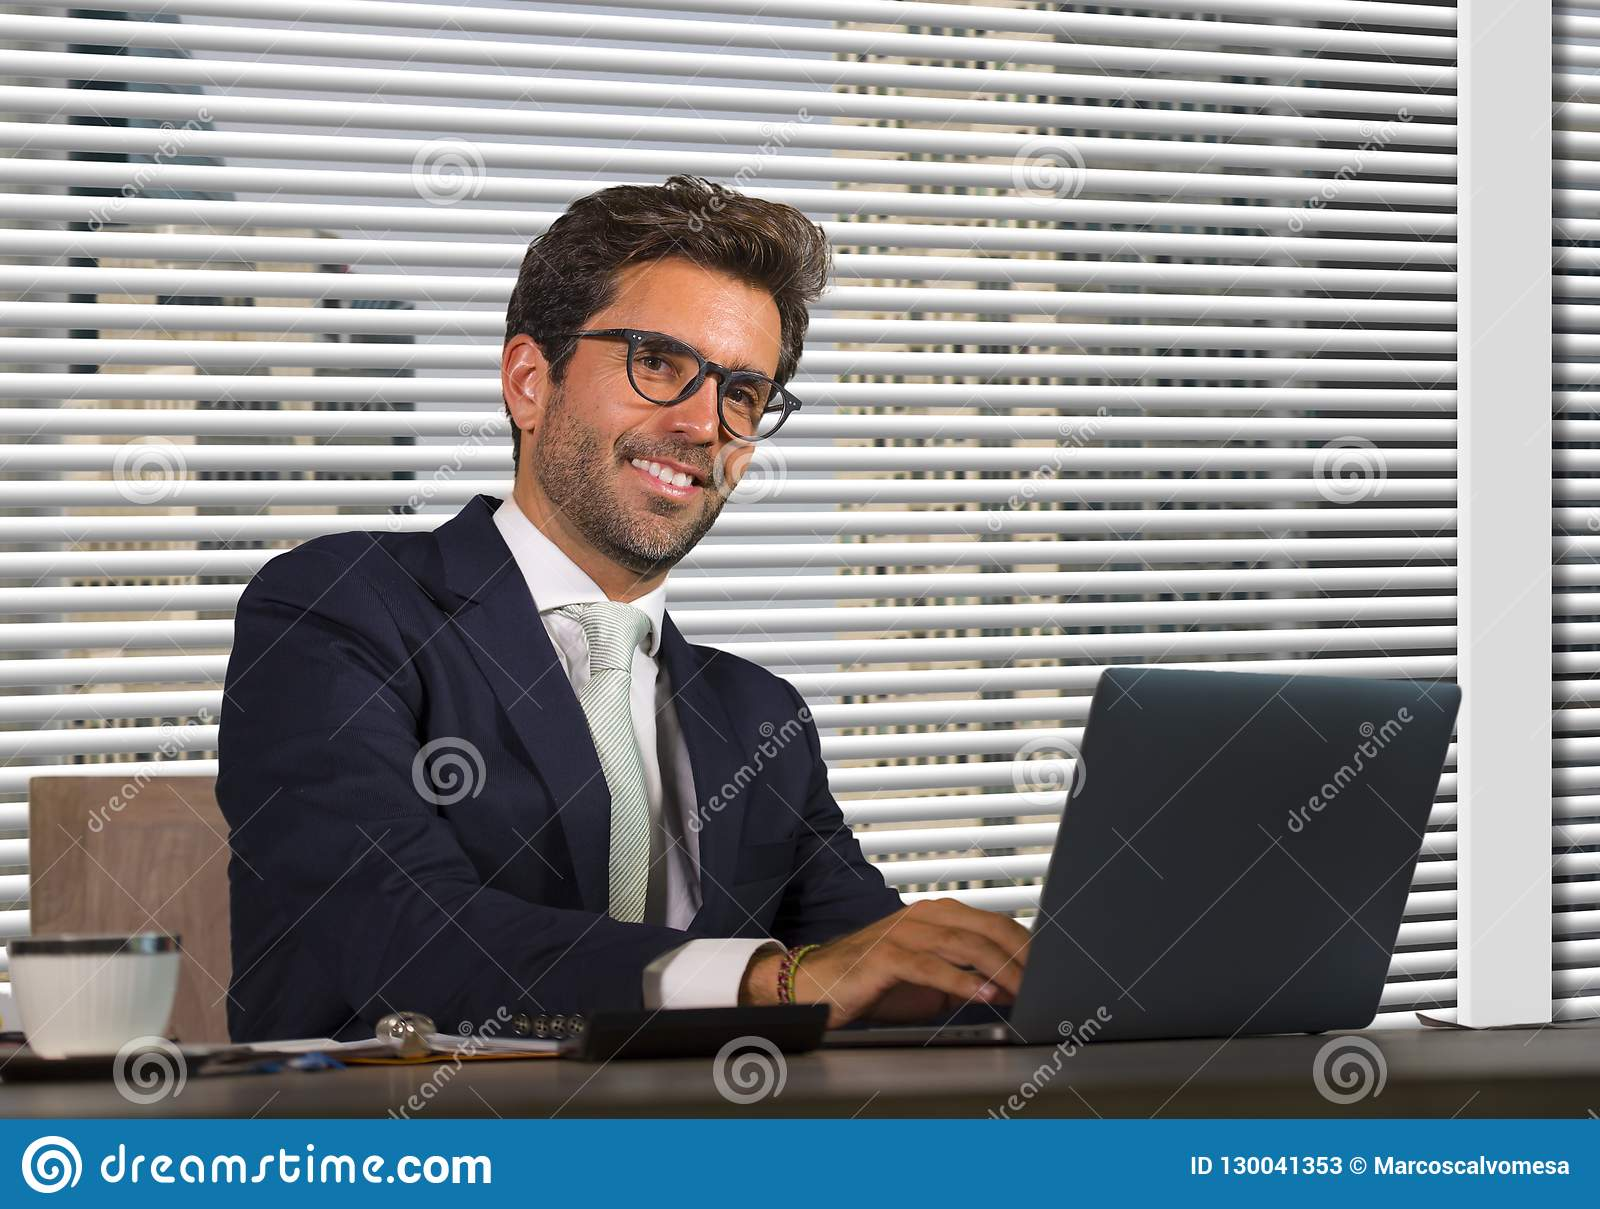 Lifestyle corporate company portrait of young happy and successful business man working relaxed at modern office sitting by window